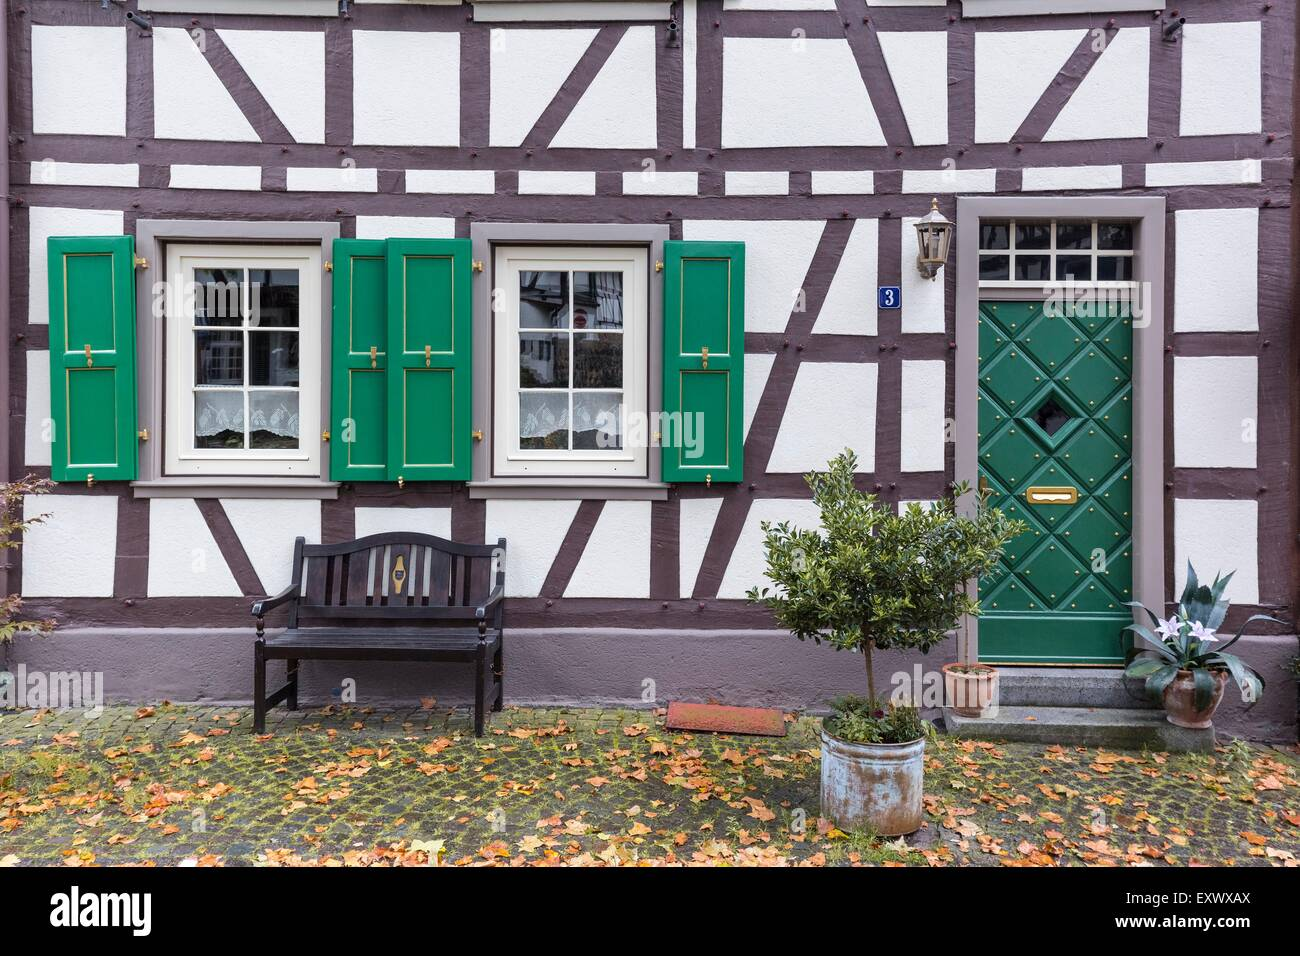 Timber-framed house, Erpel, Rhineland-Palatinate, Germany, Europe - Stock Image